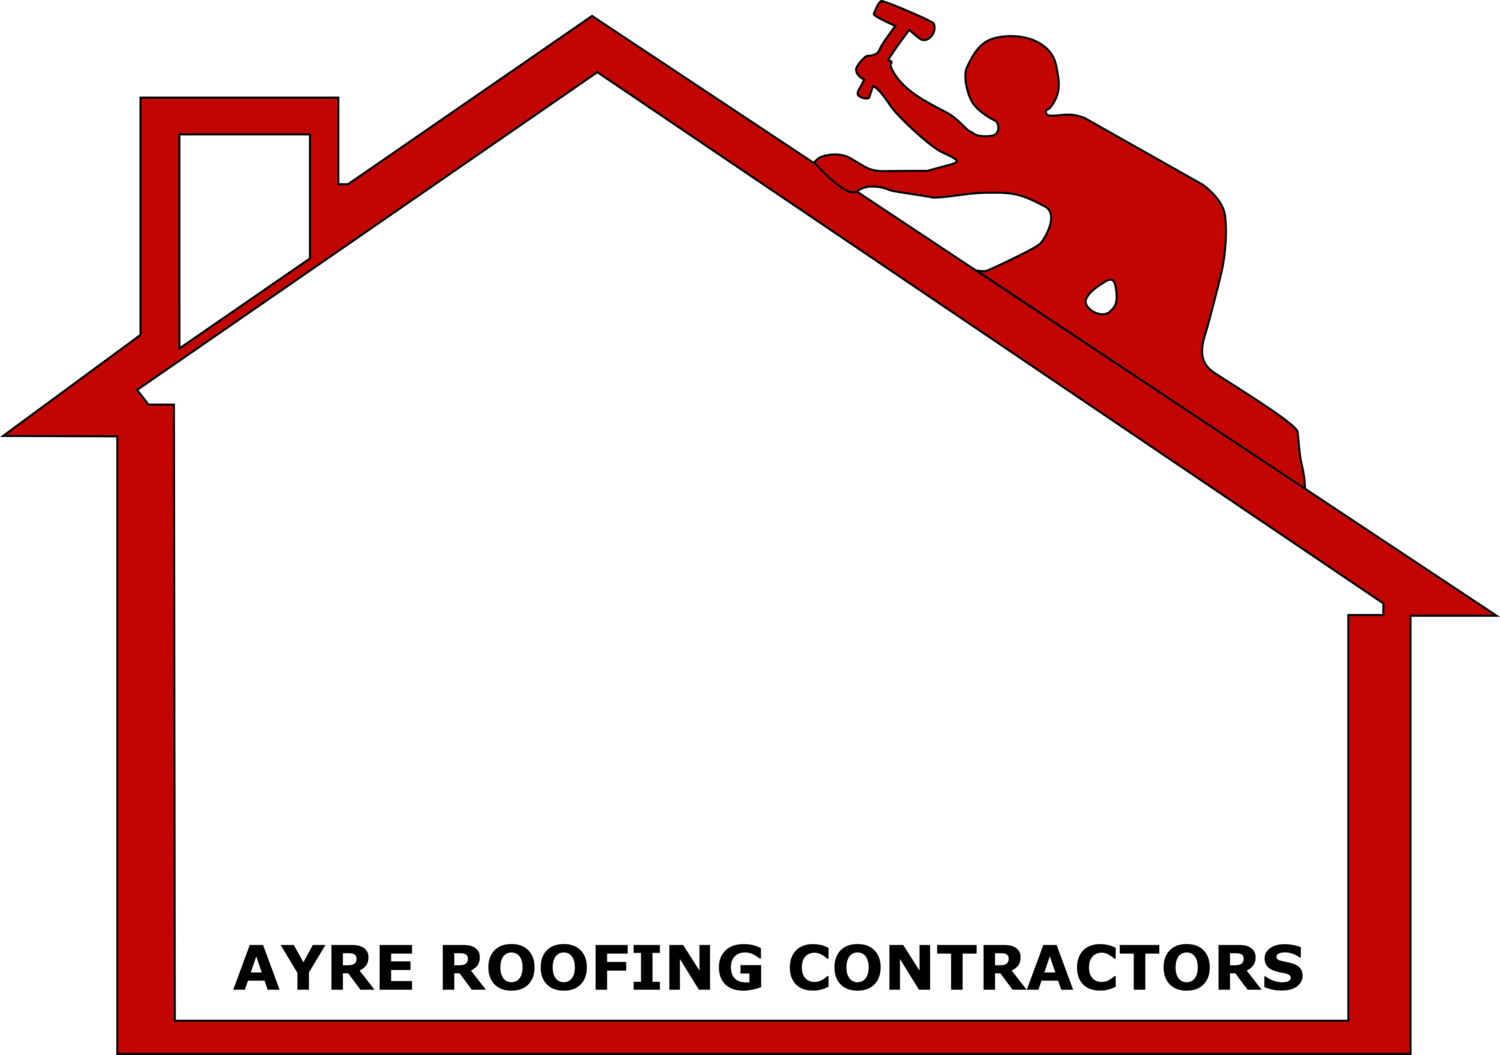 Ayre roofing . Contractor clipart church